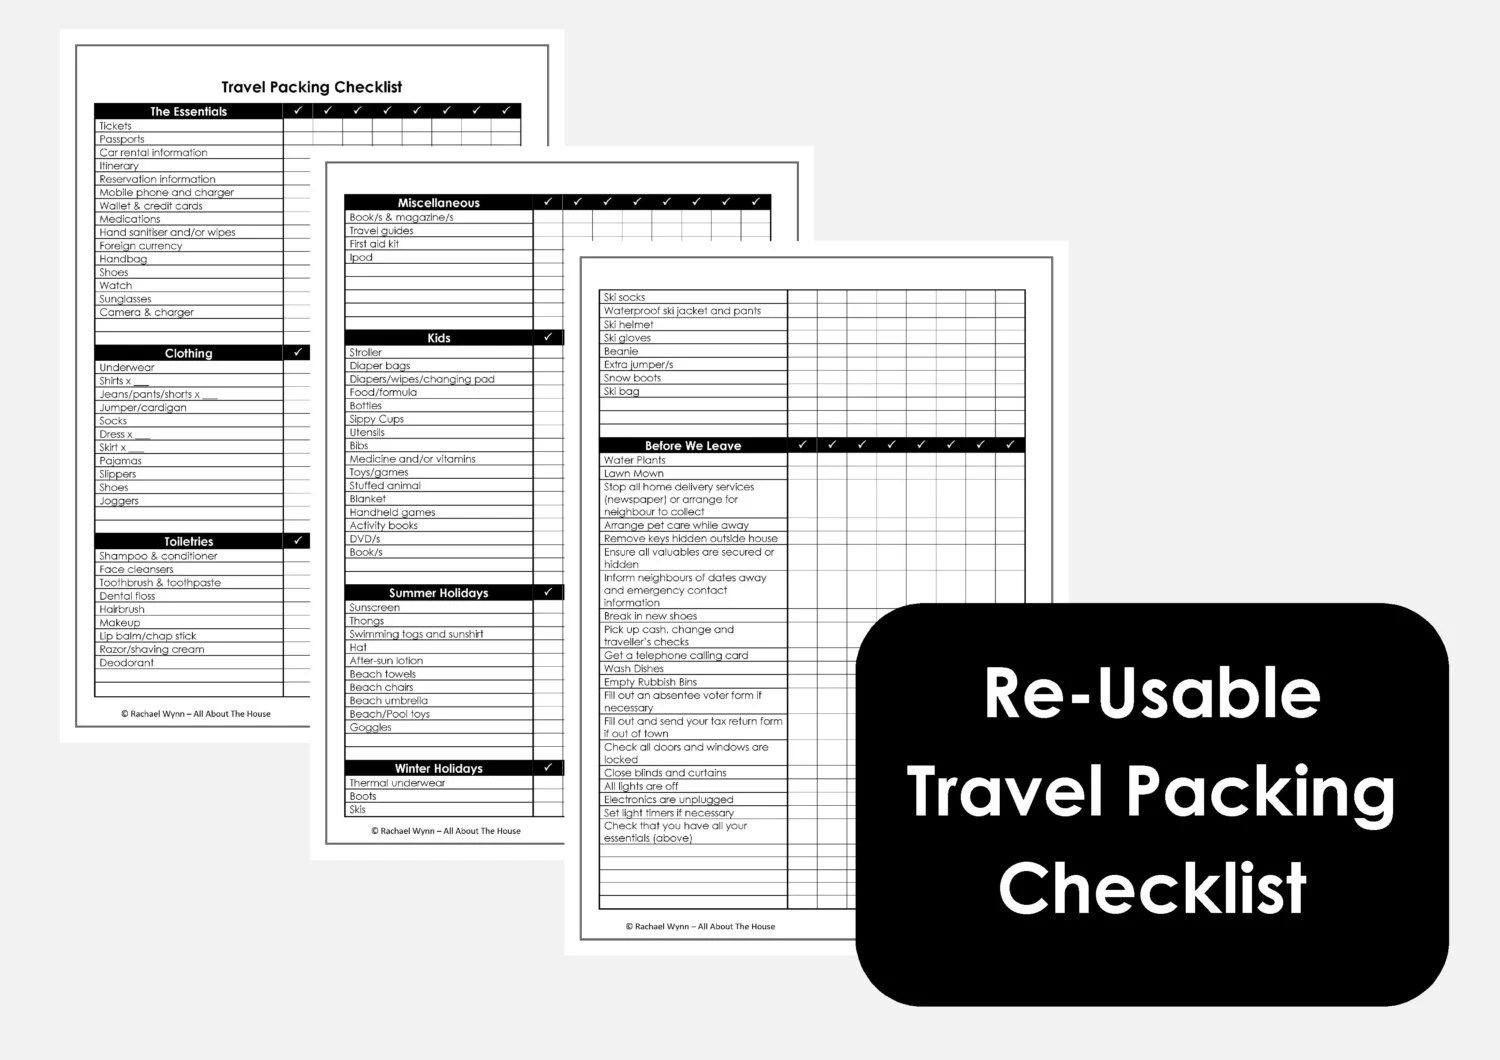 Reusable Travel Packing Checklist 3 Sheets Home